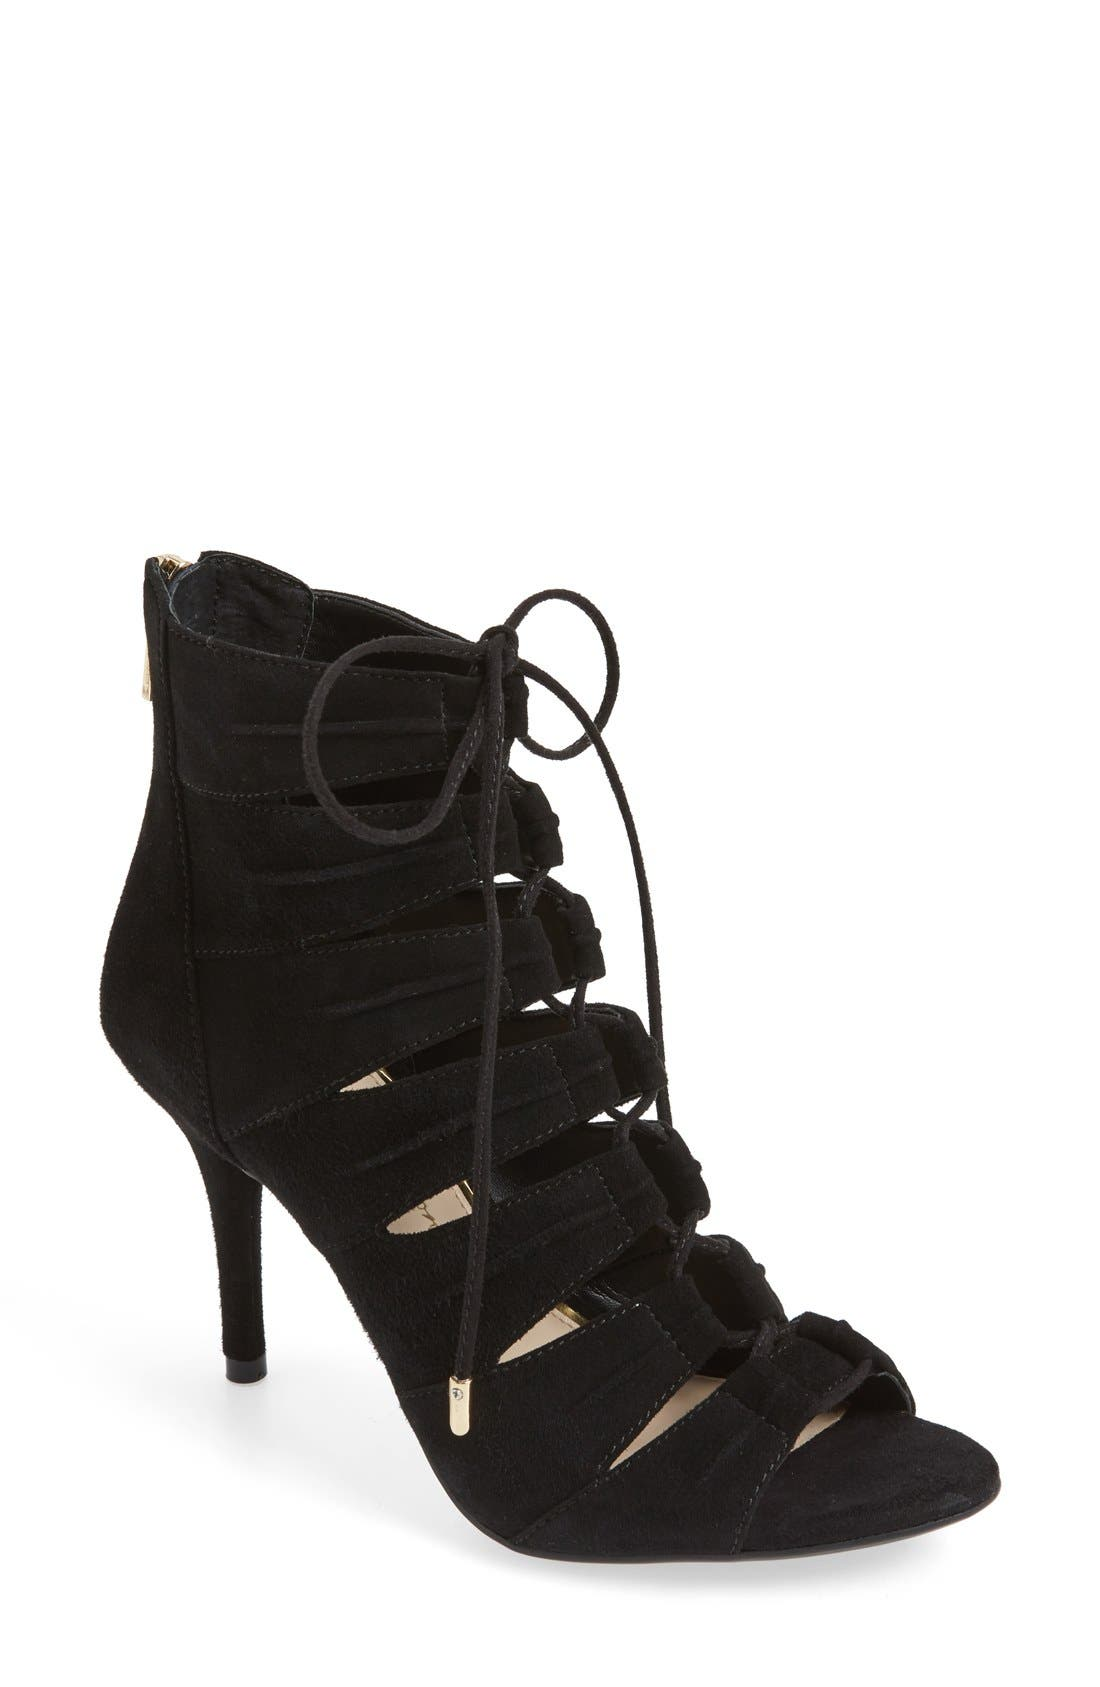 'Mahiri' Ghillie Open Toe Bootie,                             Main thumbnail 1, color,                             Black Suede